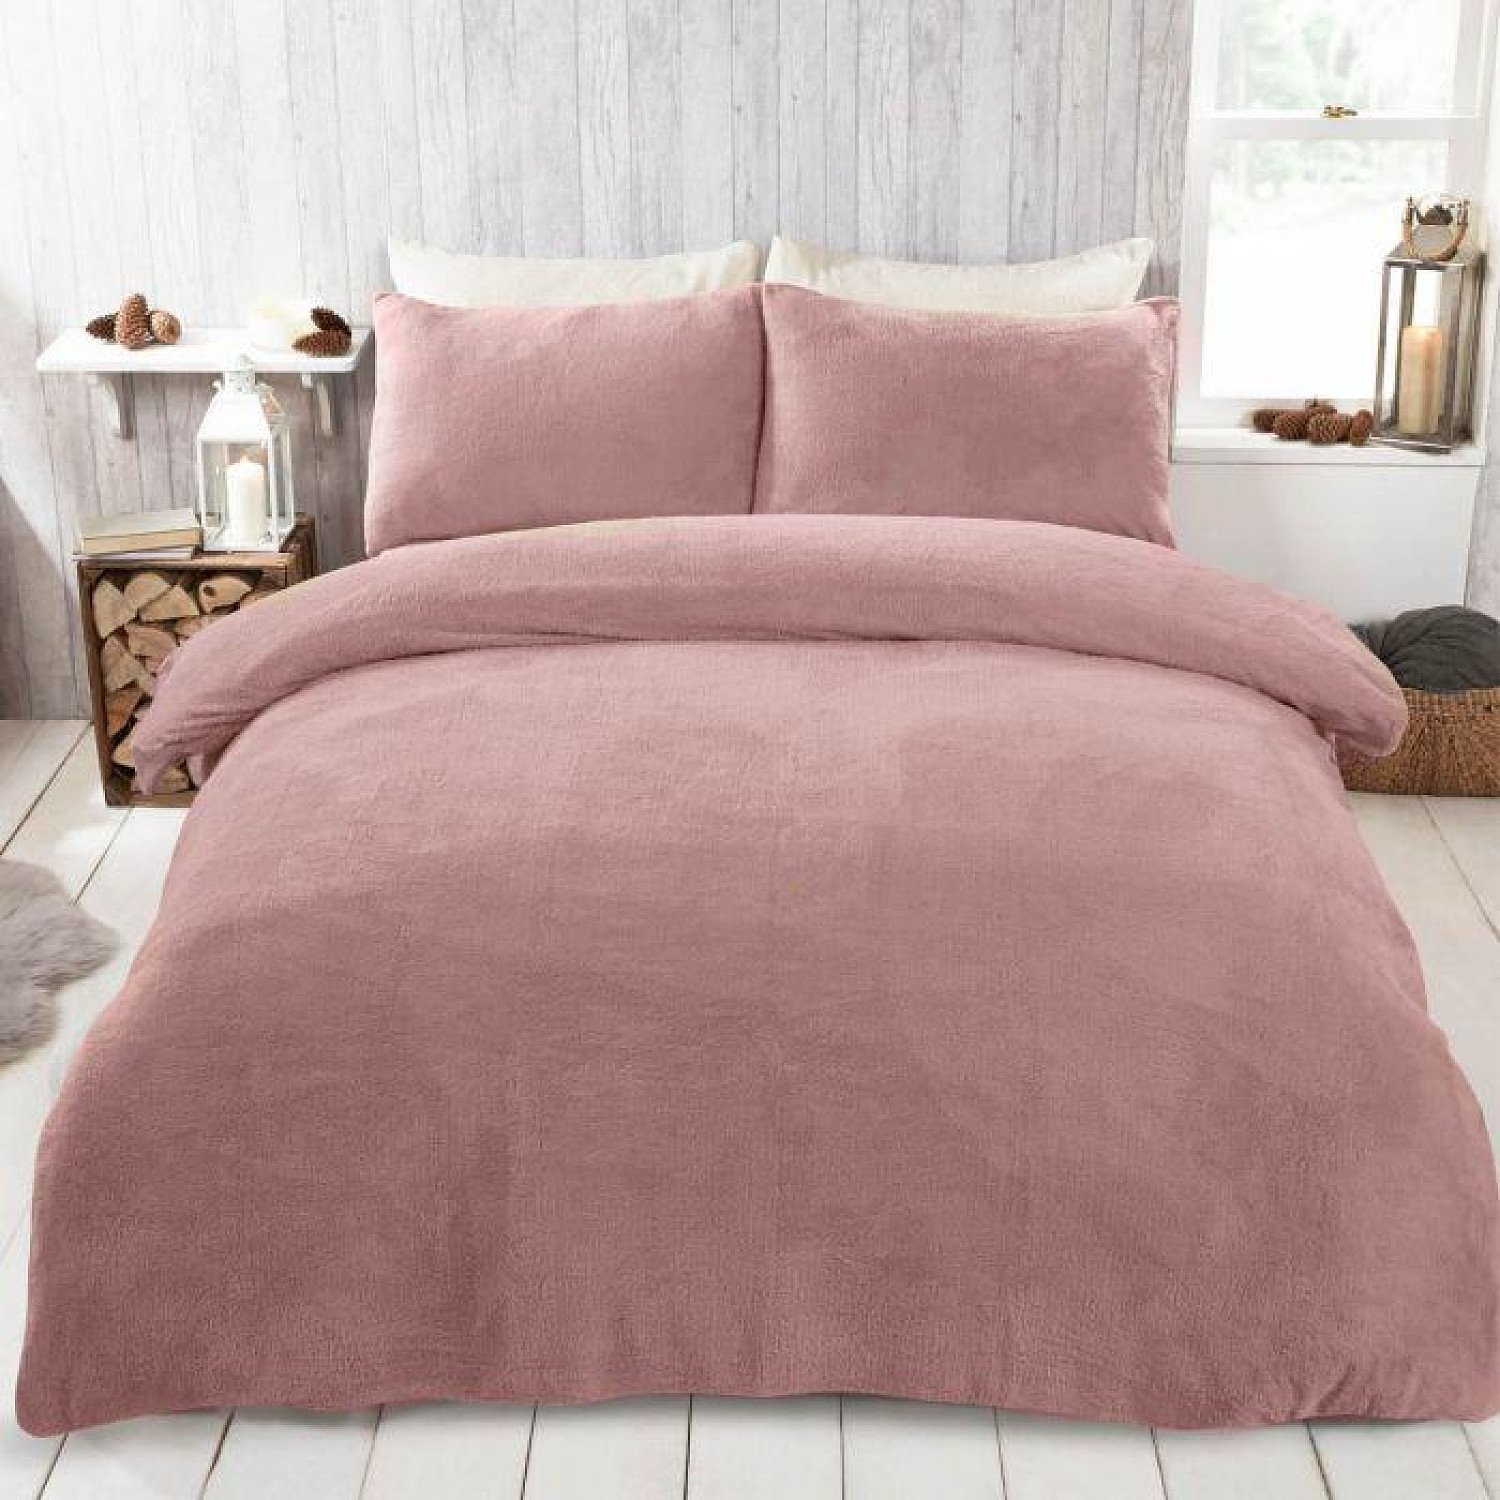 BRENTFORDS TEDDY FLEECE DUVET COVER SET - BLUSH PINK